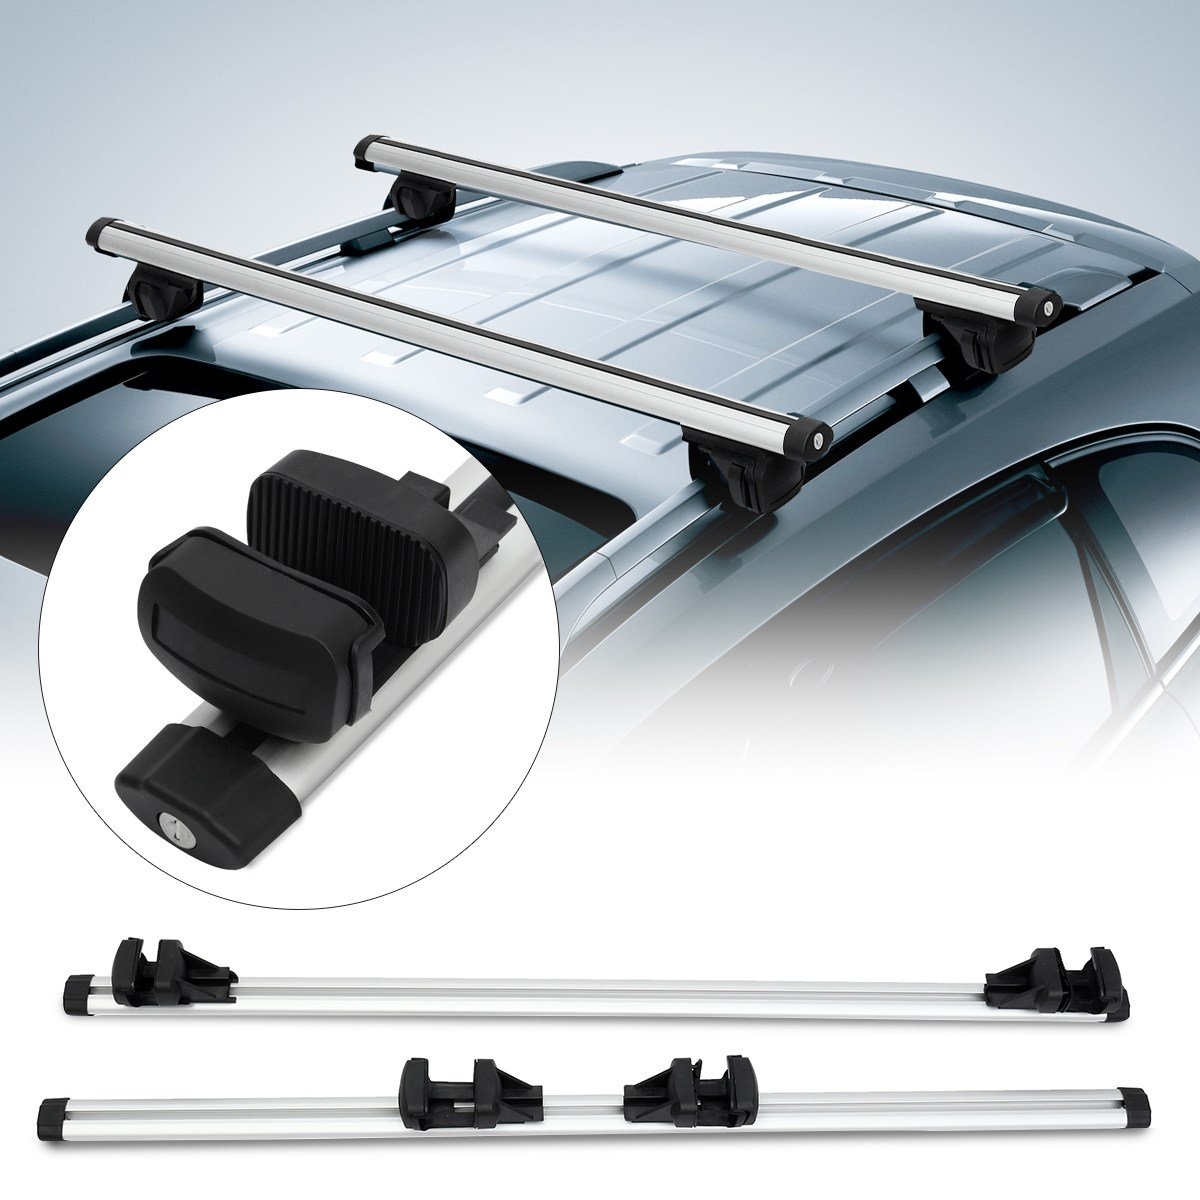 Car Silver Roof Rack Cross Bar with Anti-theft Lock Auto Roof Rails Rack Bars Outdoor Rooftop Luggage Carrier Racks 130cm new new anti theft car roof bars adjustable cross bar system universal car travel luggage carrier lockable aluminum bars rack